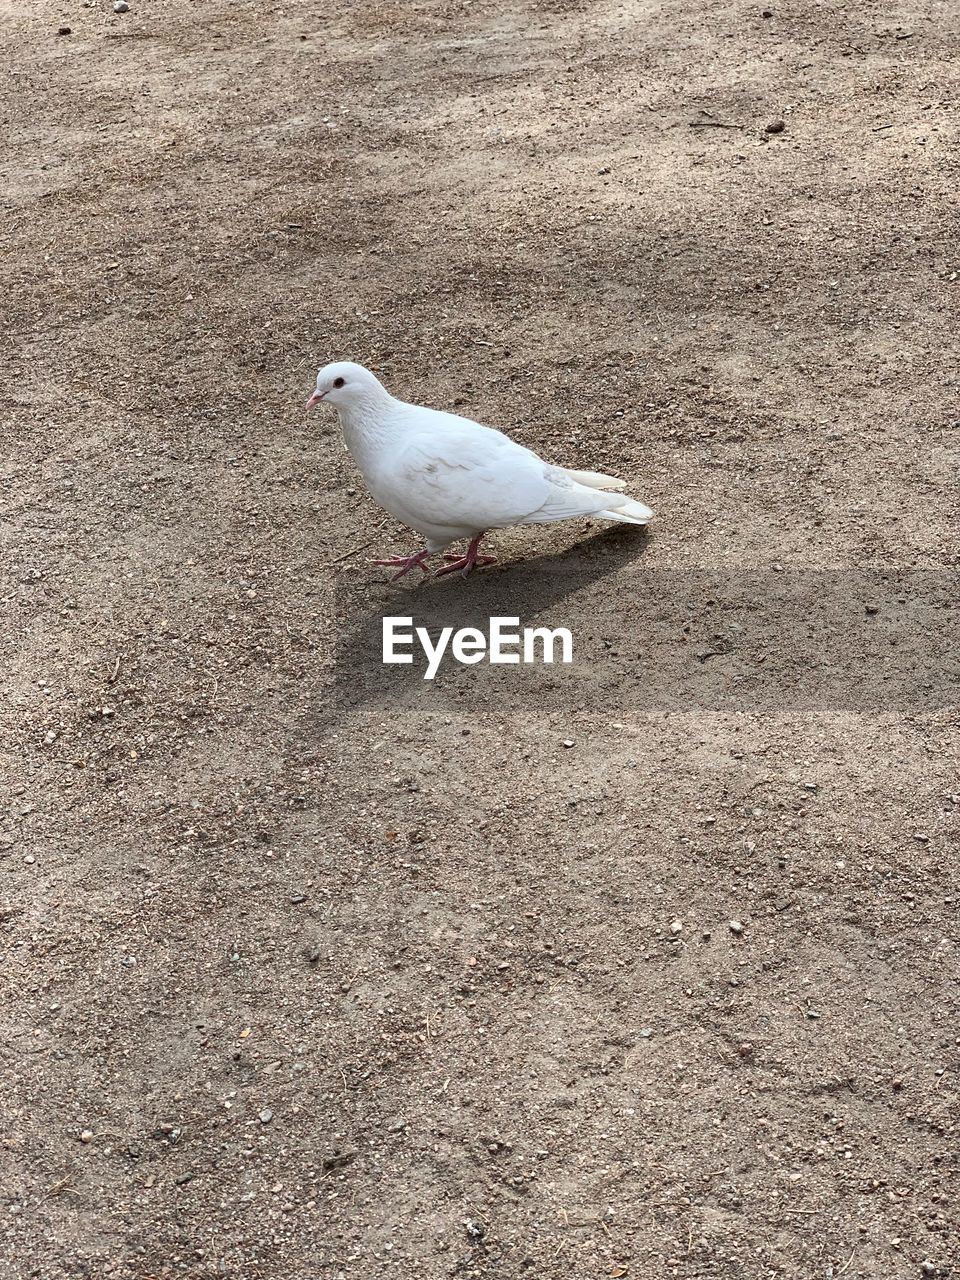 animal themes, animal, bird, animal wildlife, one animal, animals in the wild, vertebrate, day, no people, high angle view, land, perching, nature, full length, outdoors, seagull, field, white color, sunlight, side view